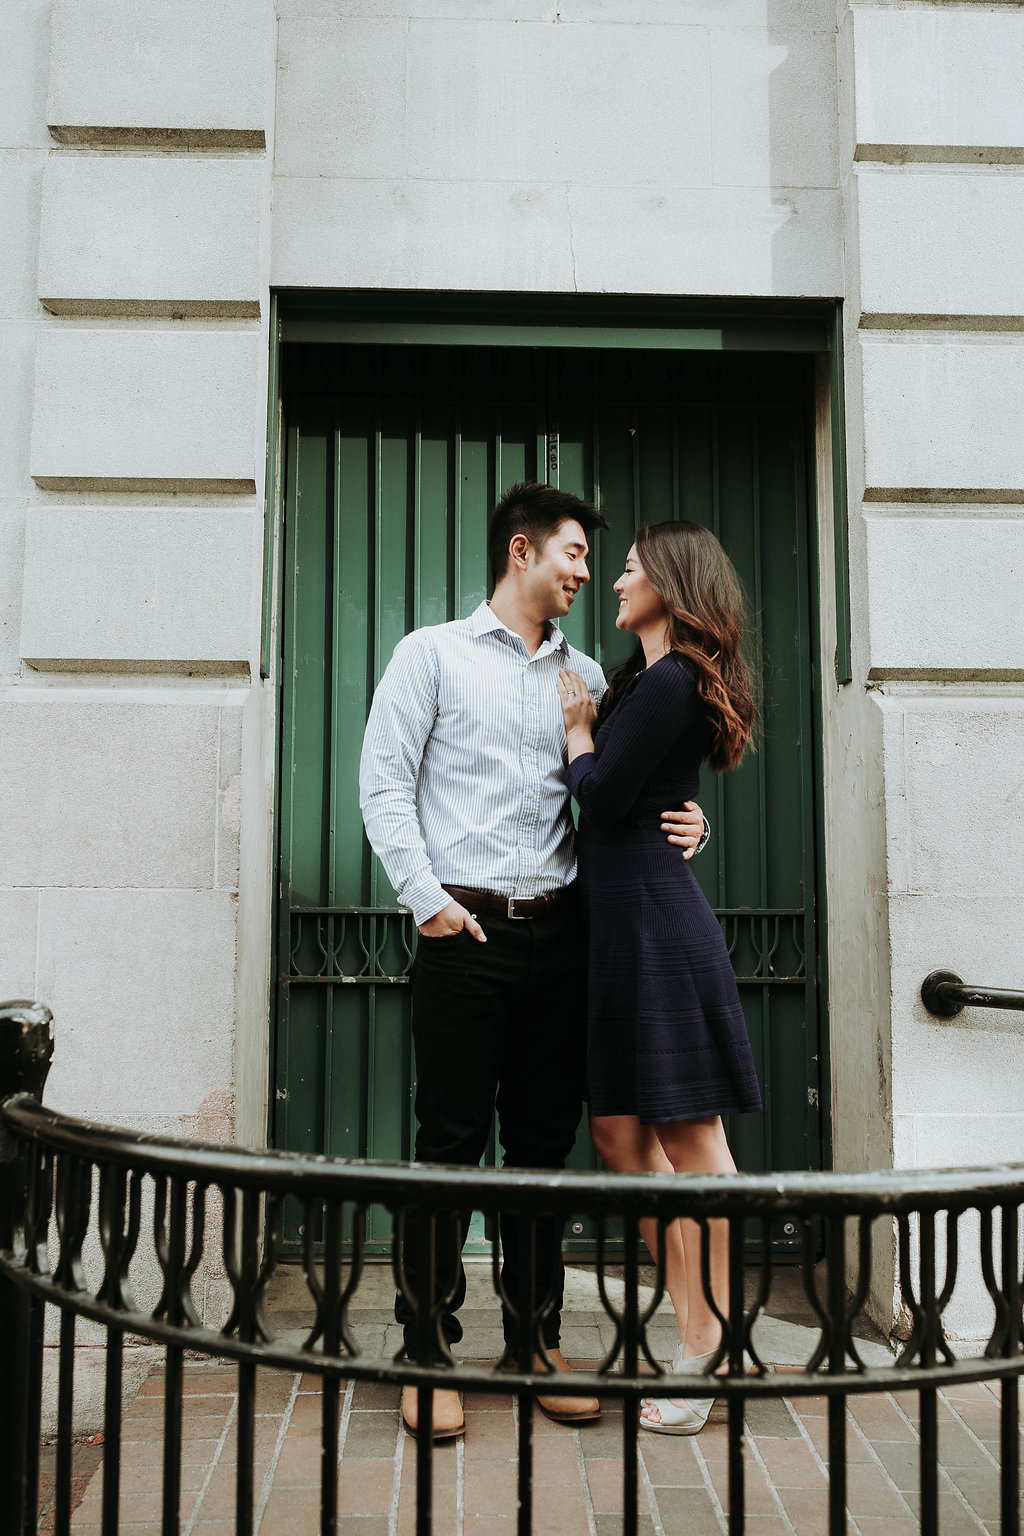 pioneer square seattle Engagement photos by adina preston weddings. Affordable Seattle wedding Photographer